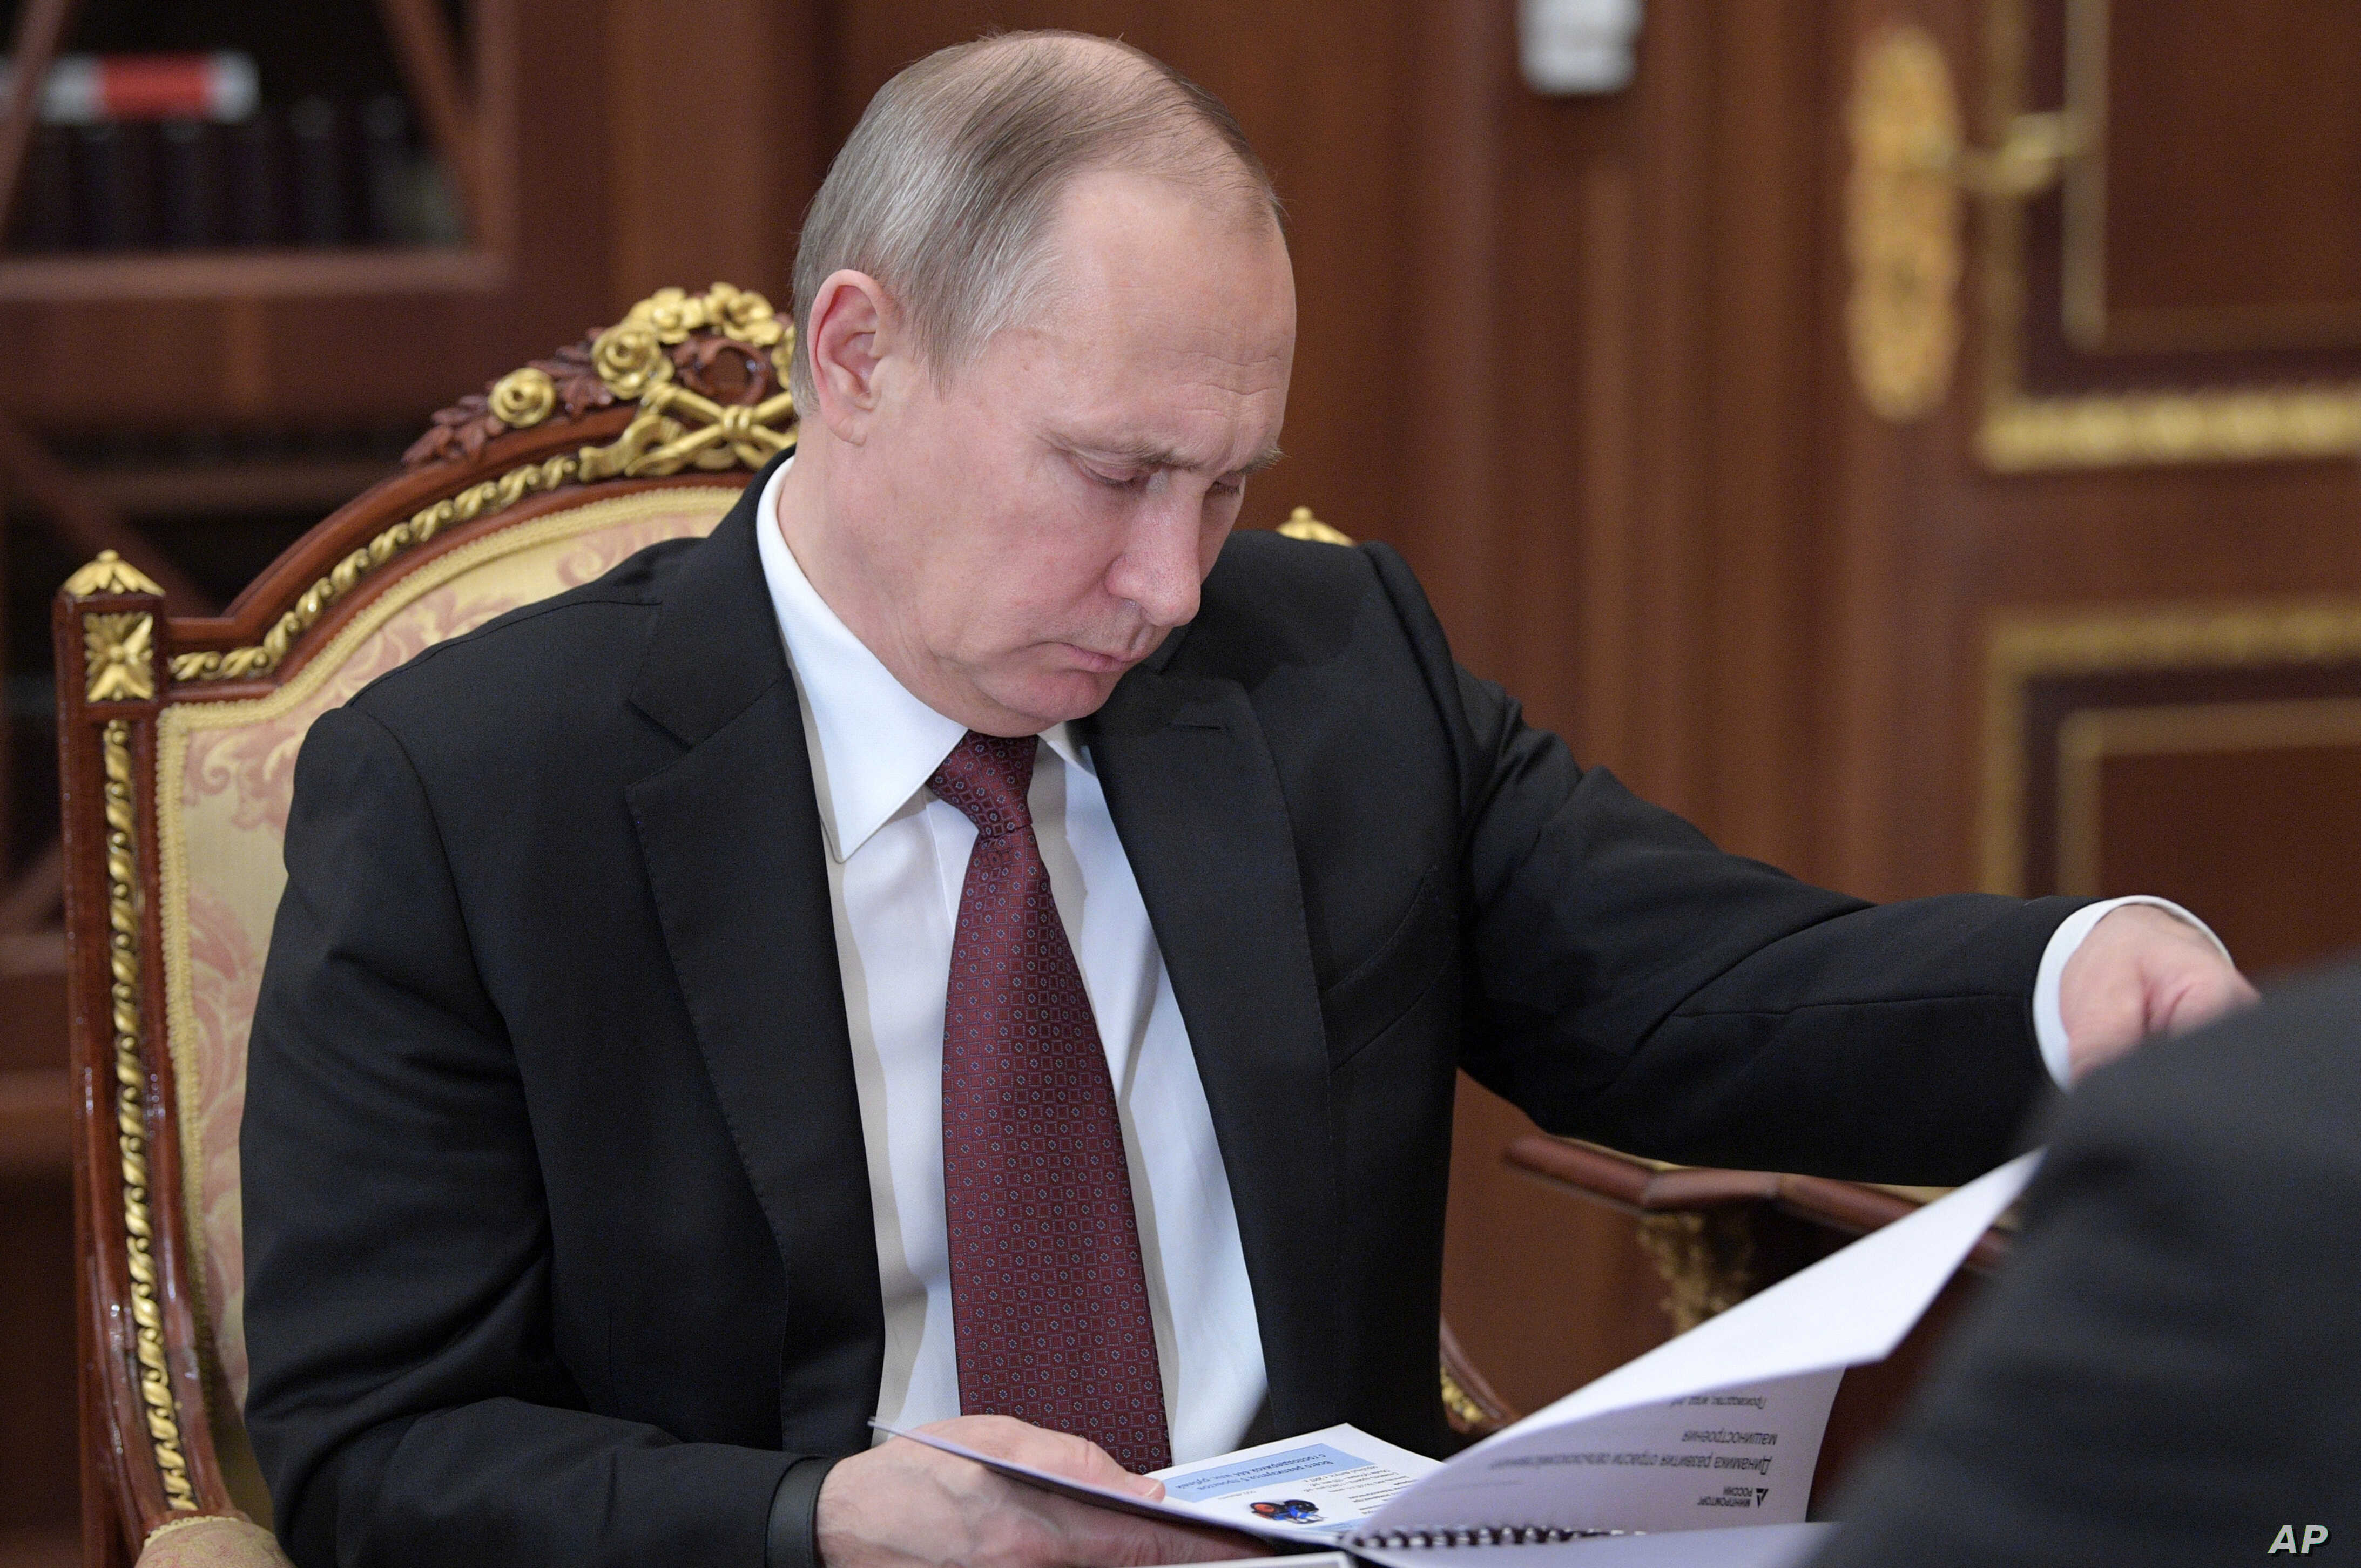 Russian President Vladimir Putin reads papers during a meeting in the Kremlin, in Moscow, Russia, Jan. 16, 2017.